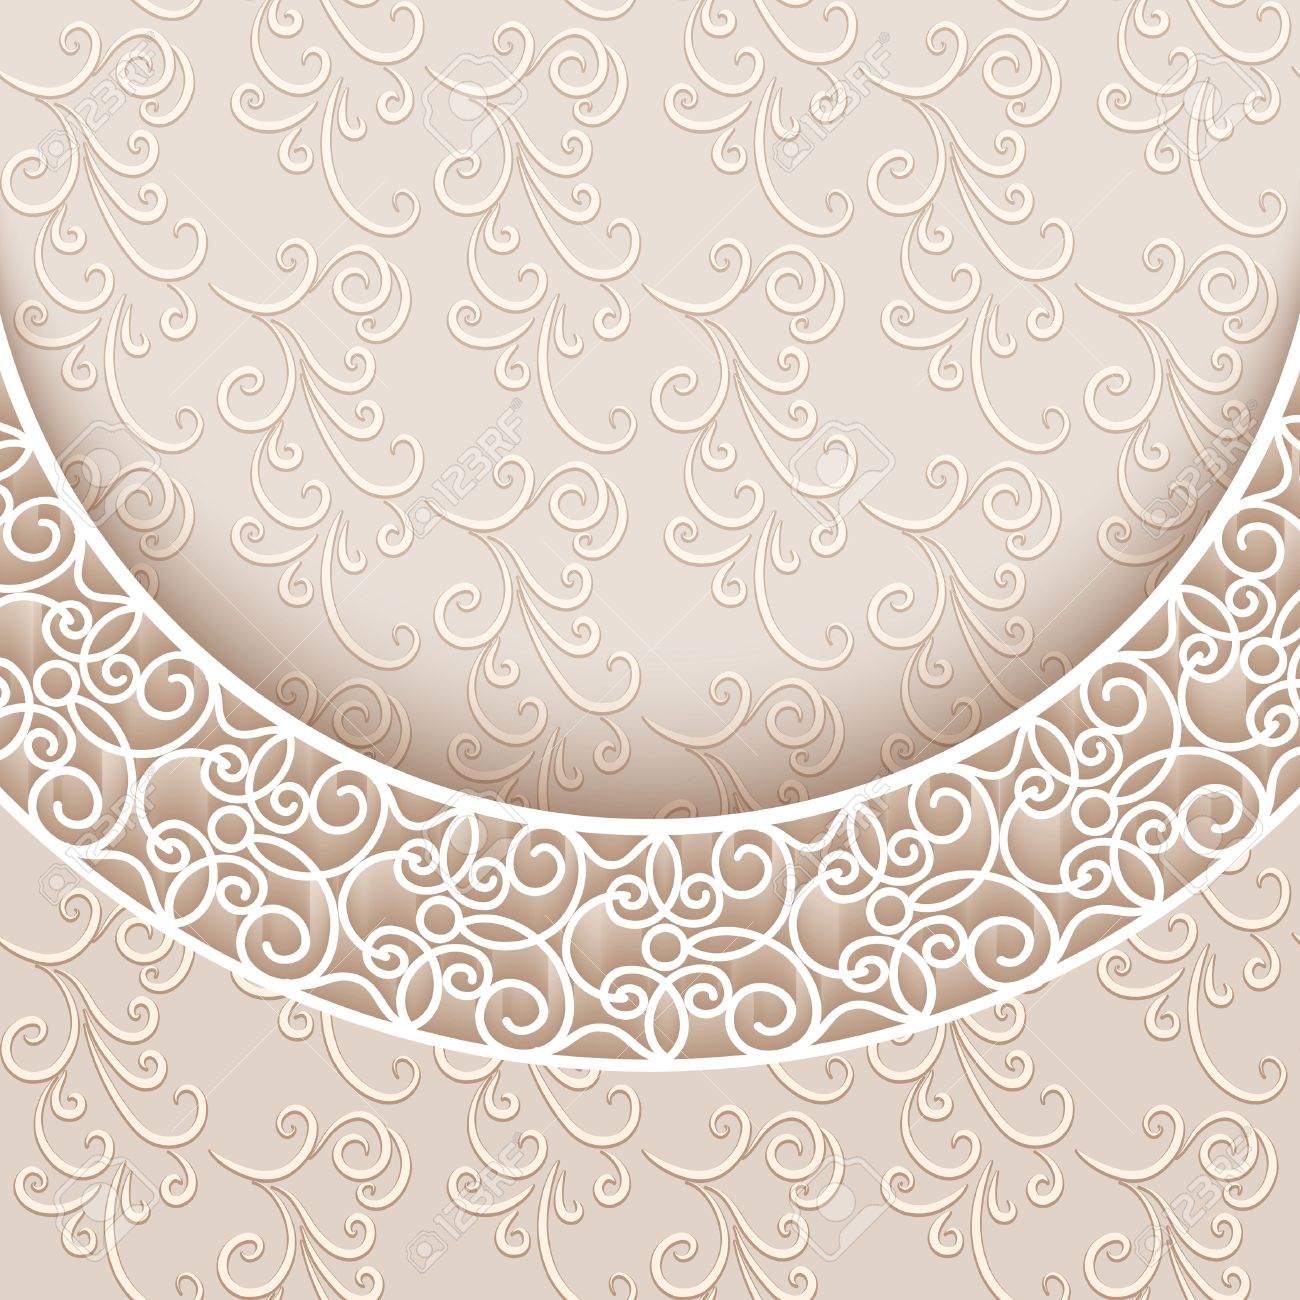 Elegant background with lace decoration, vintage greeting card or invitation template - 52369613